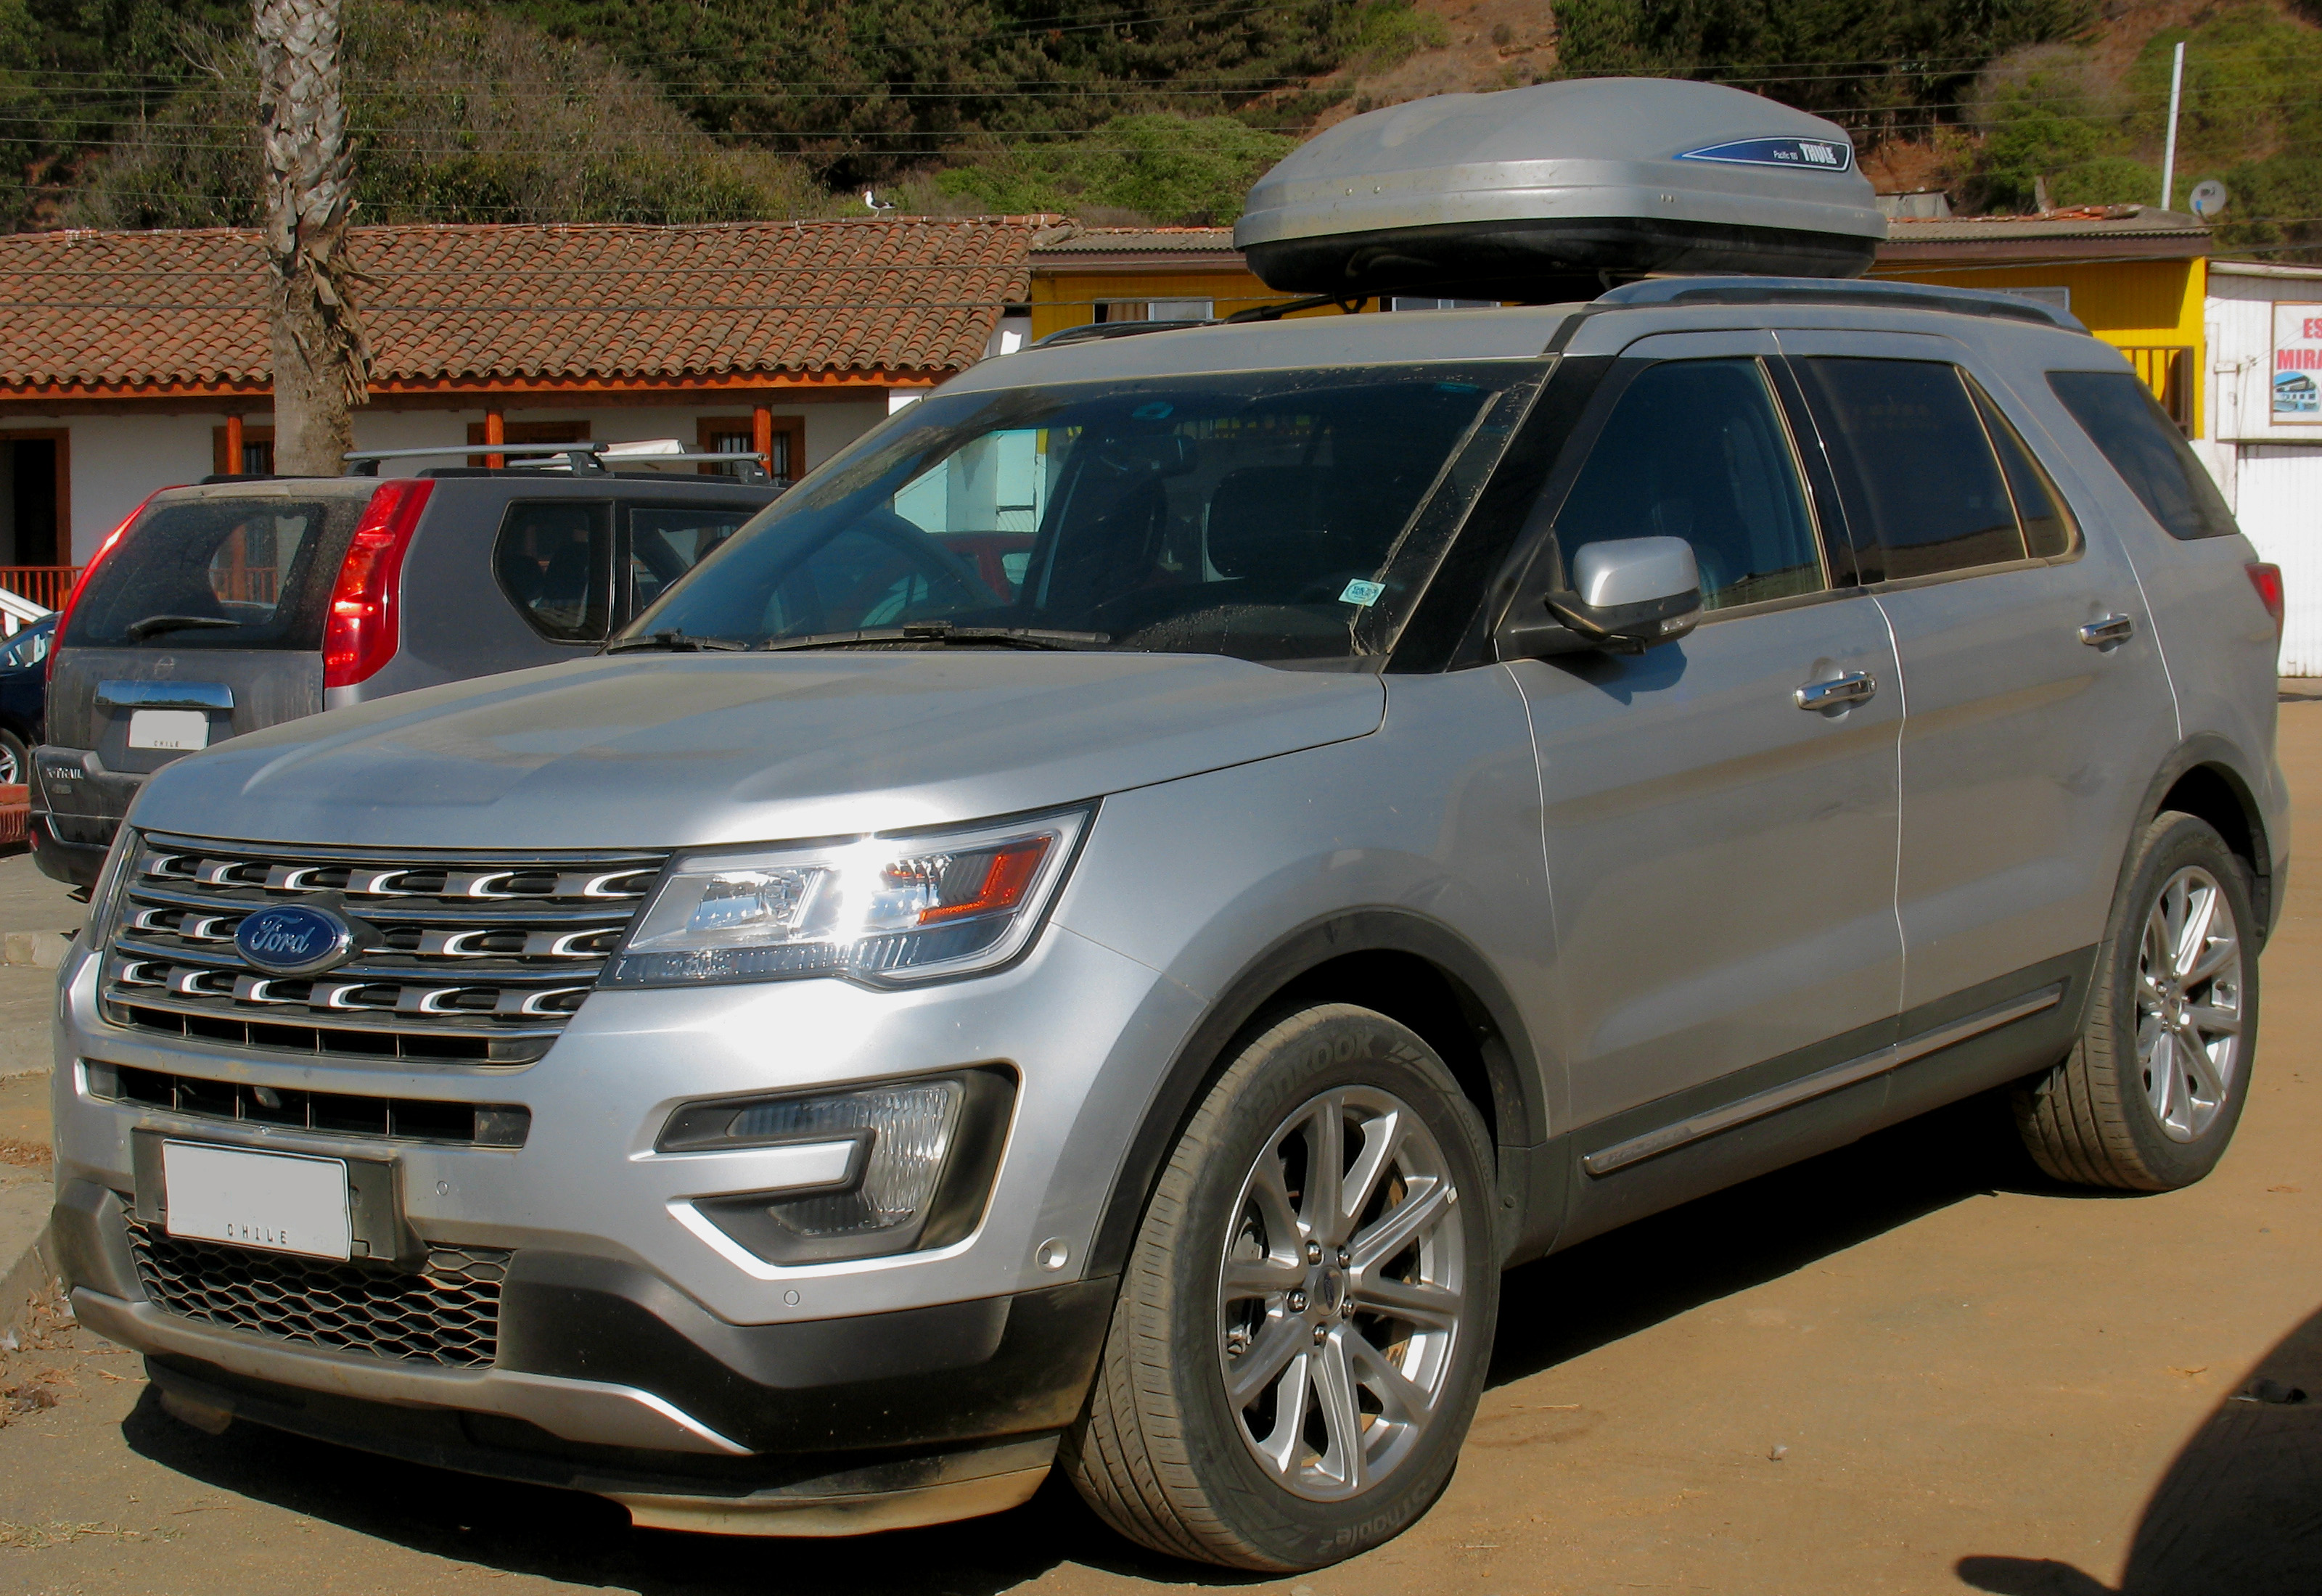 2016 Ford Explorer - Great Vehicles for Skiers - Colorado Motor Car Co.